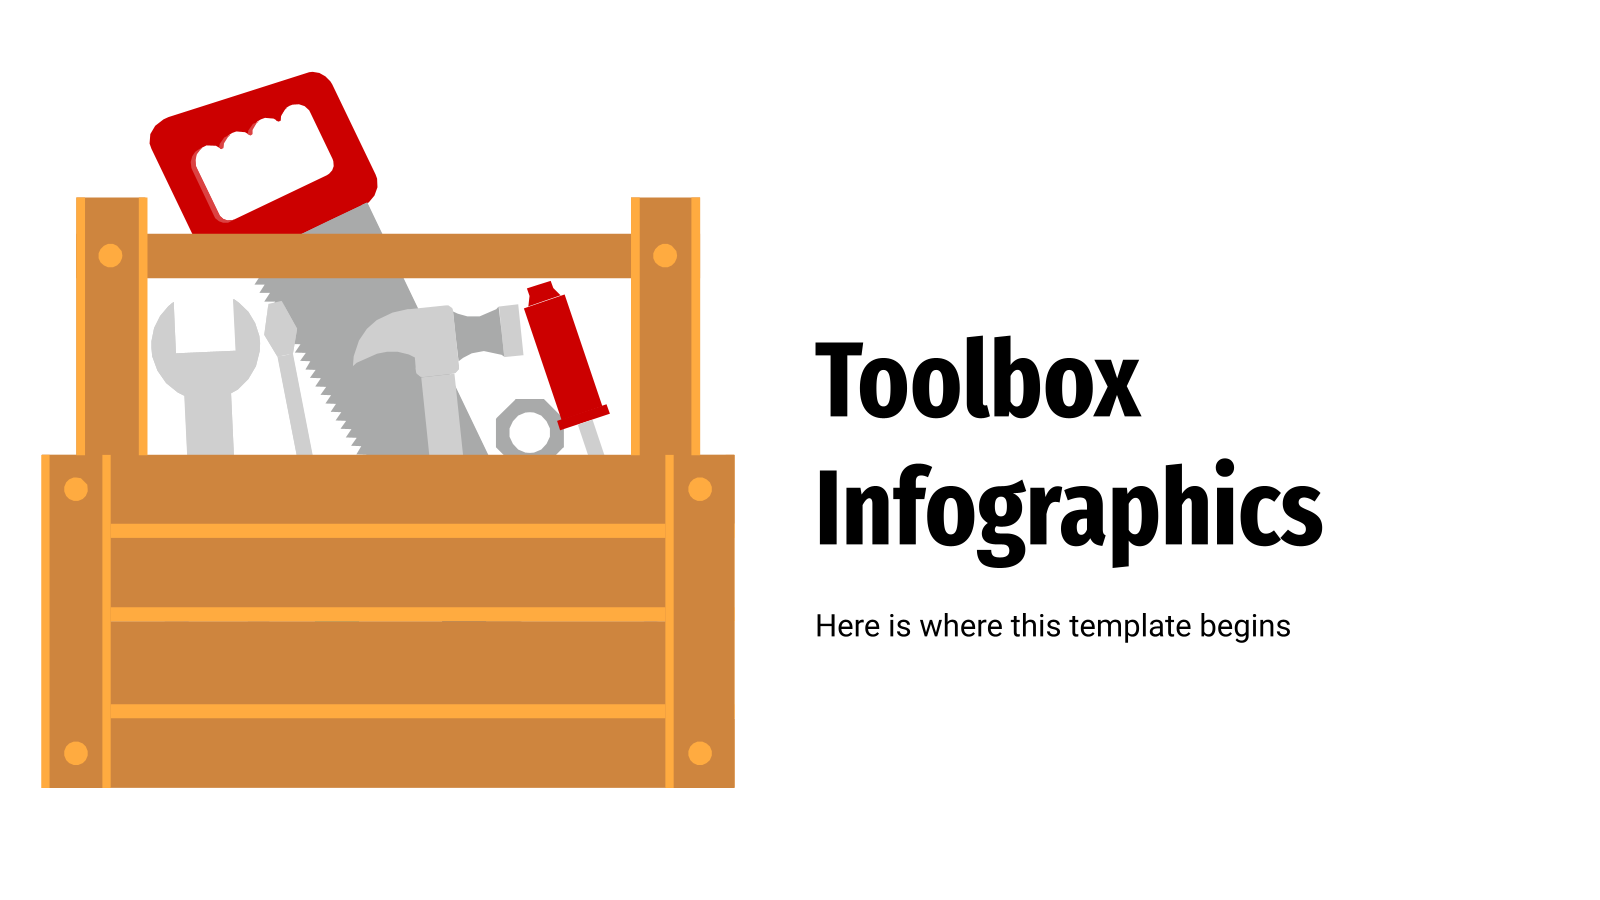 Toolbox Infographics presentation template